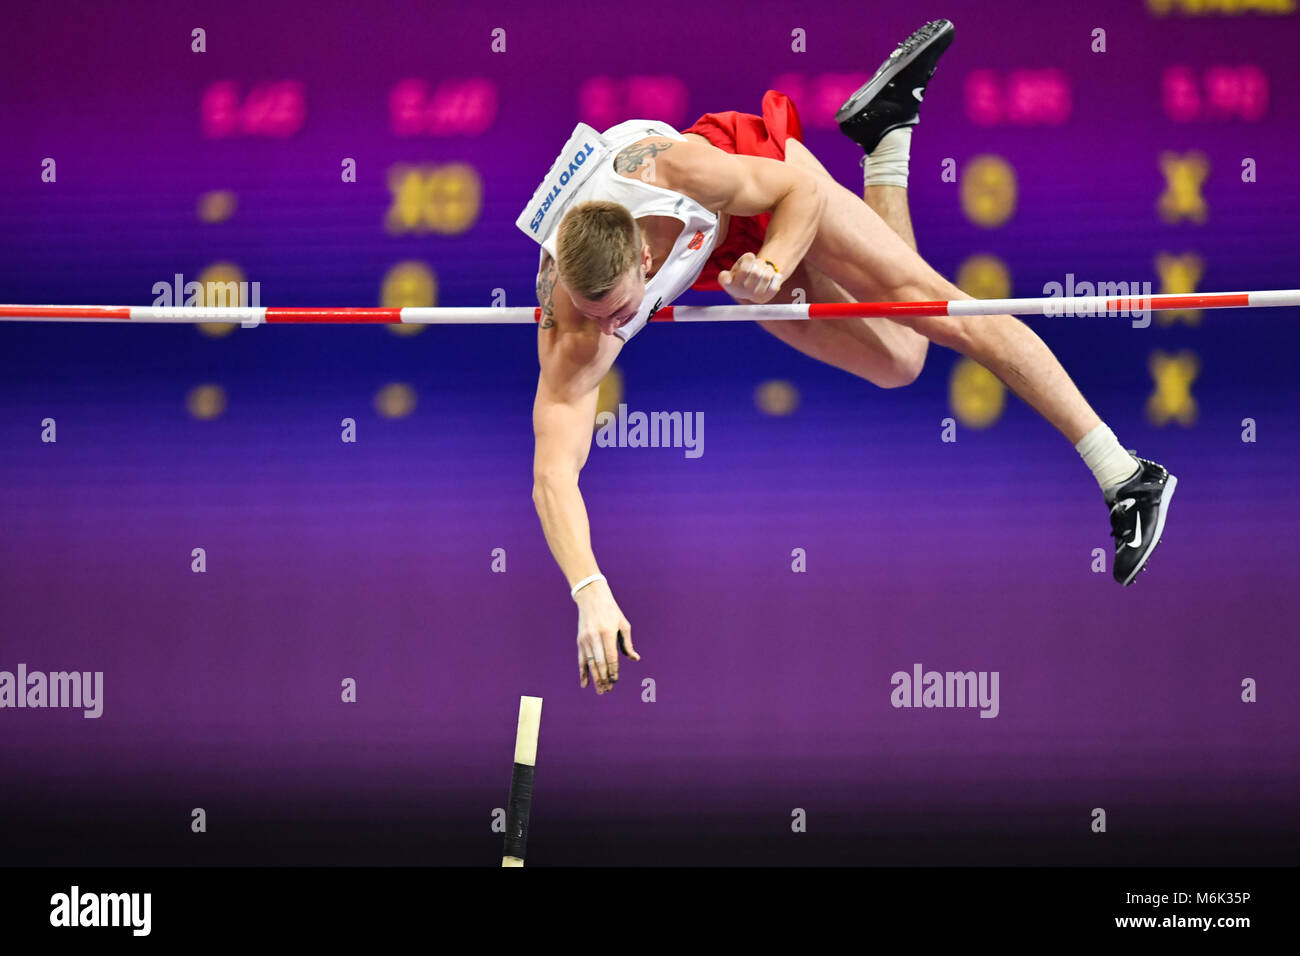 Birmingham, UK. 4th Mar, 2018. Piotr Liske (POL) in Men's Pole Vault Final during IAAF World Indoor Championships - Stock Image